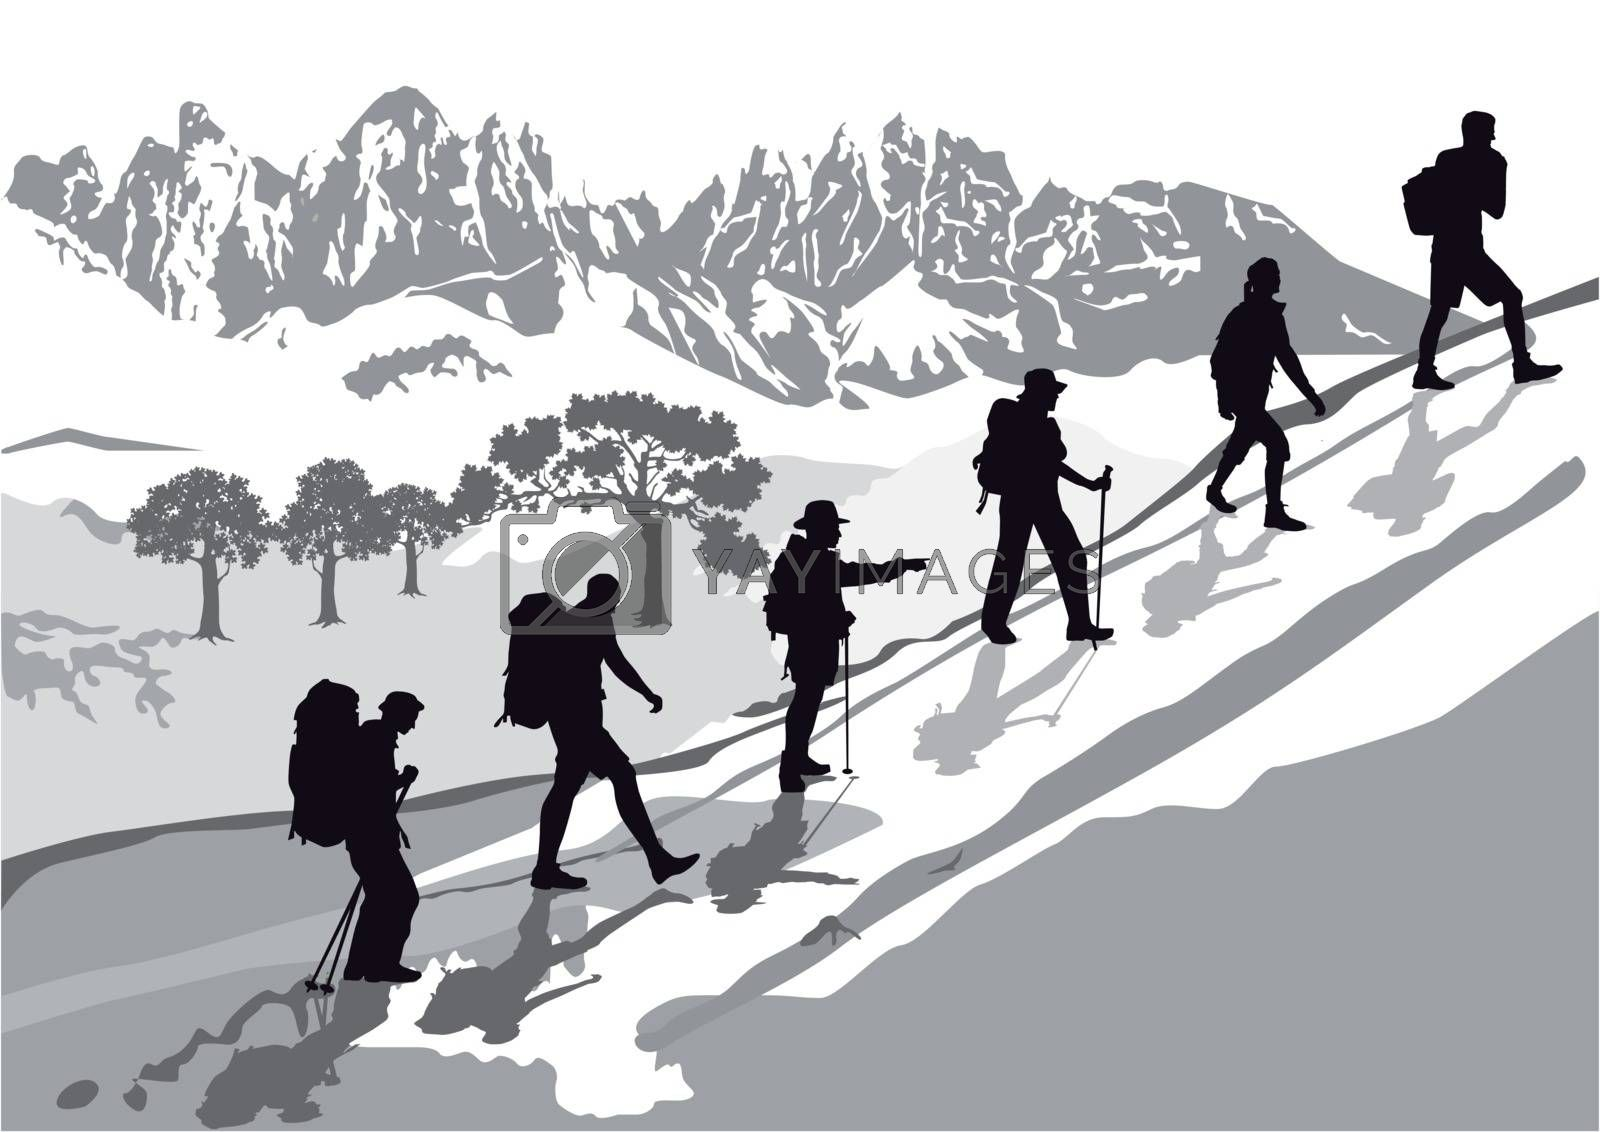 Mountaineering in the group